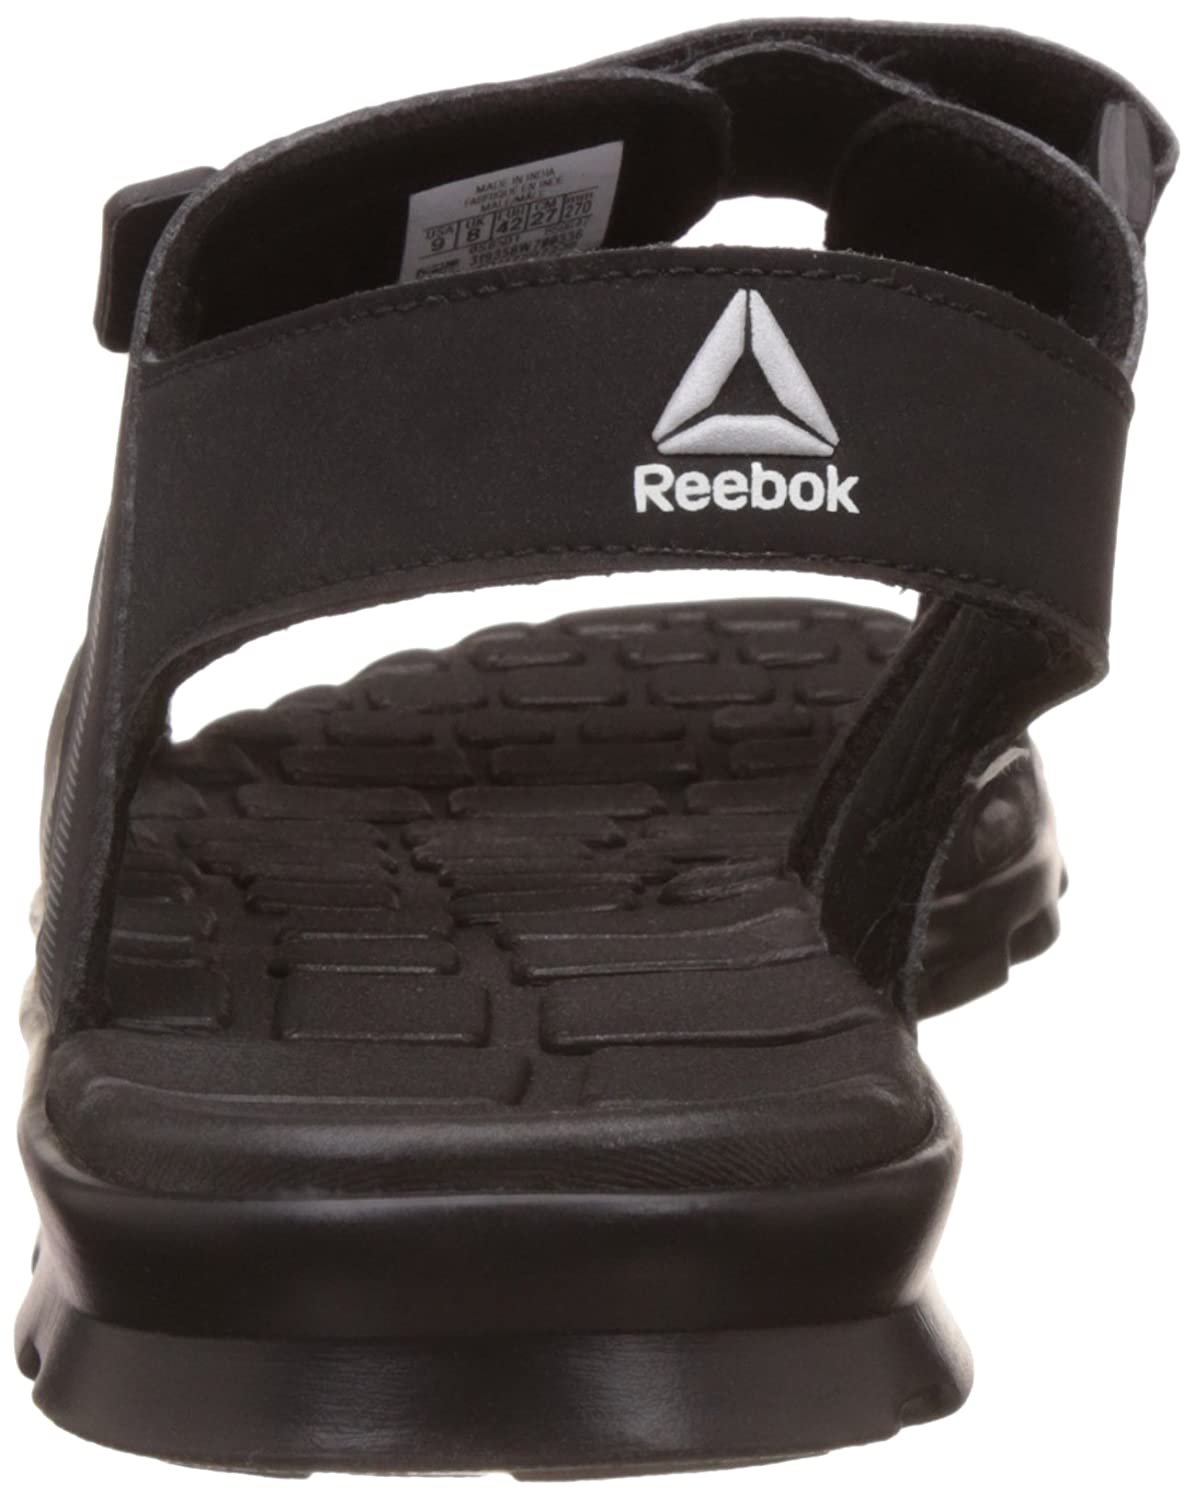 f5e2ee6e9 Reebok Men s Maze Flex Sandals and Floaters  Buy Online at Low Prices in  India - Amazon.in